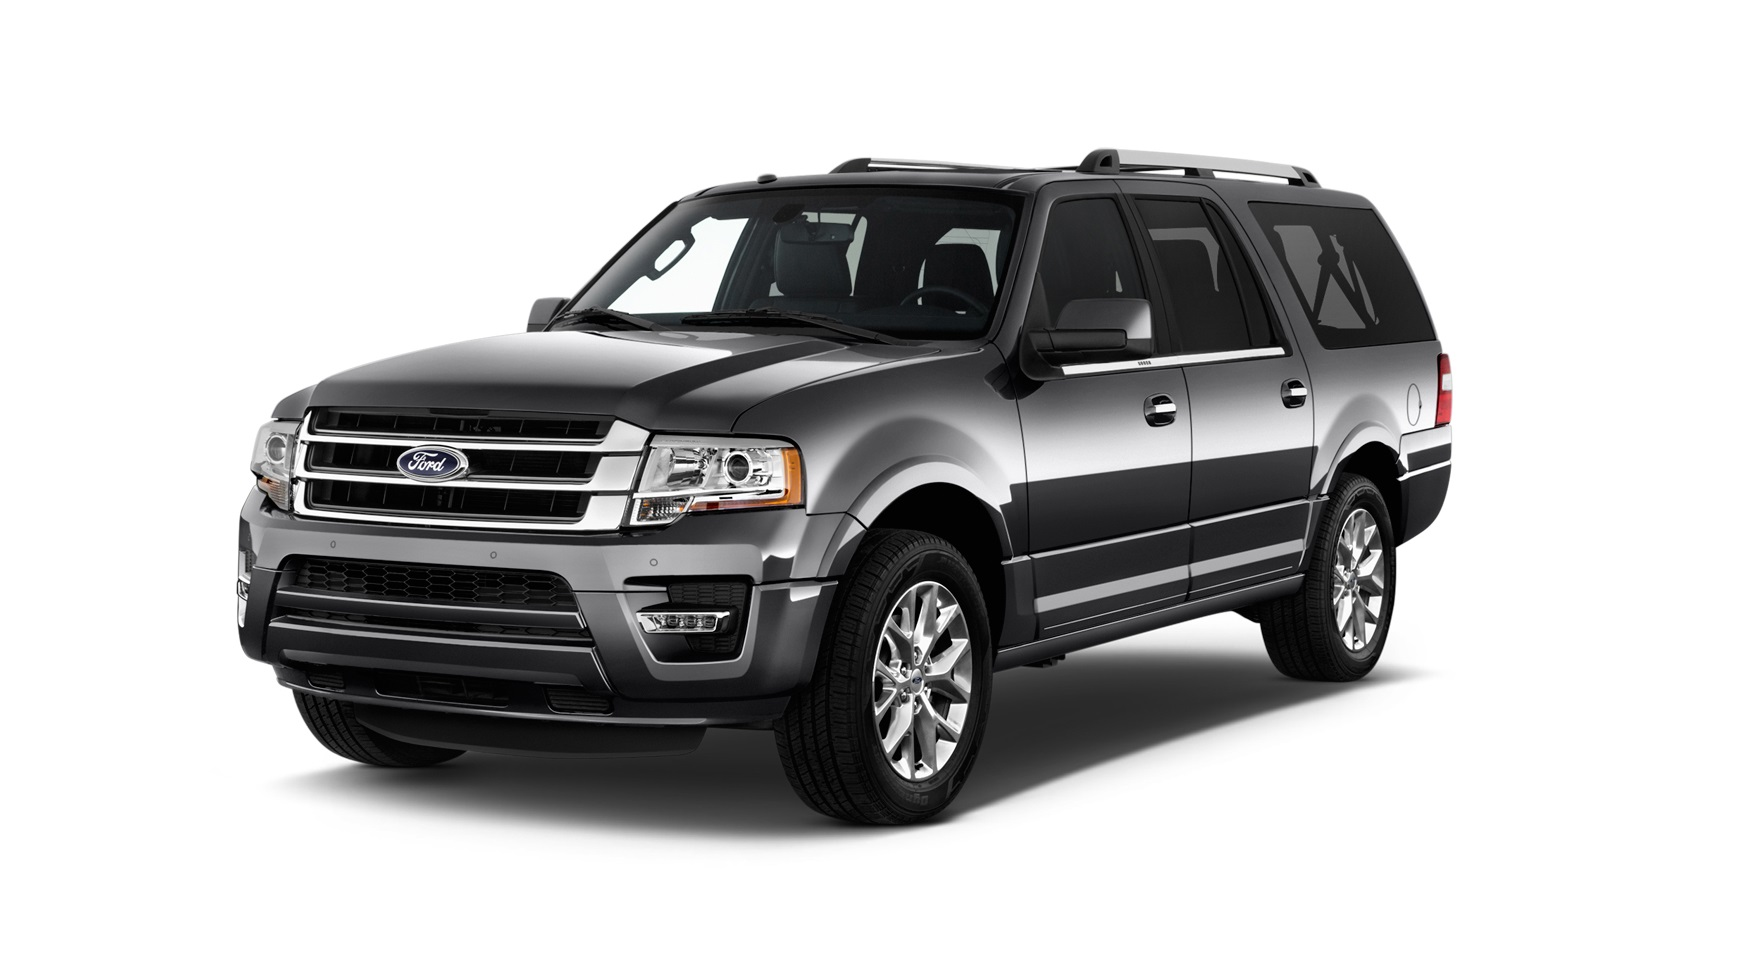 Ford Expedition EL 2019, Saudi Arabia